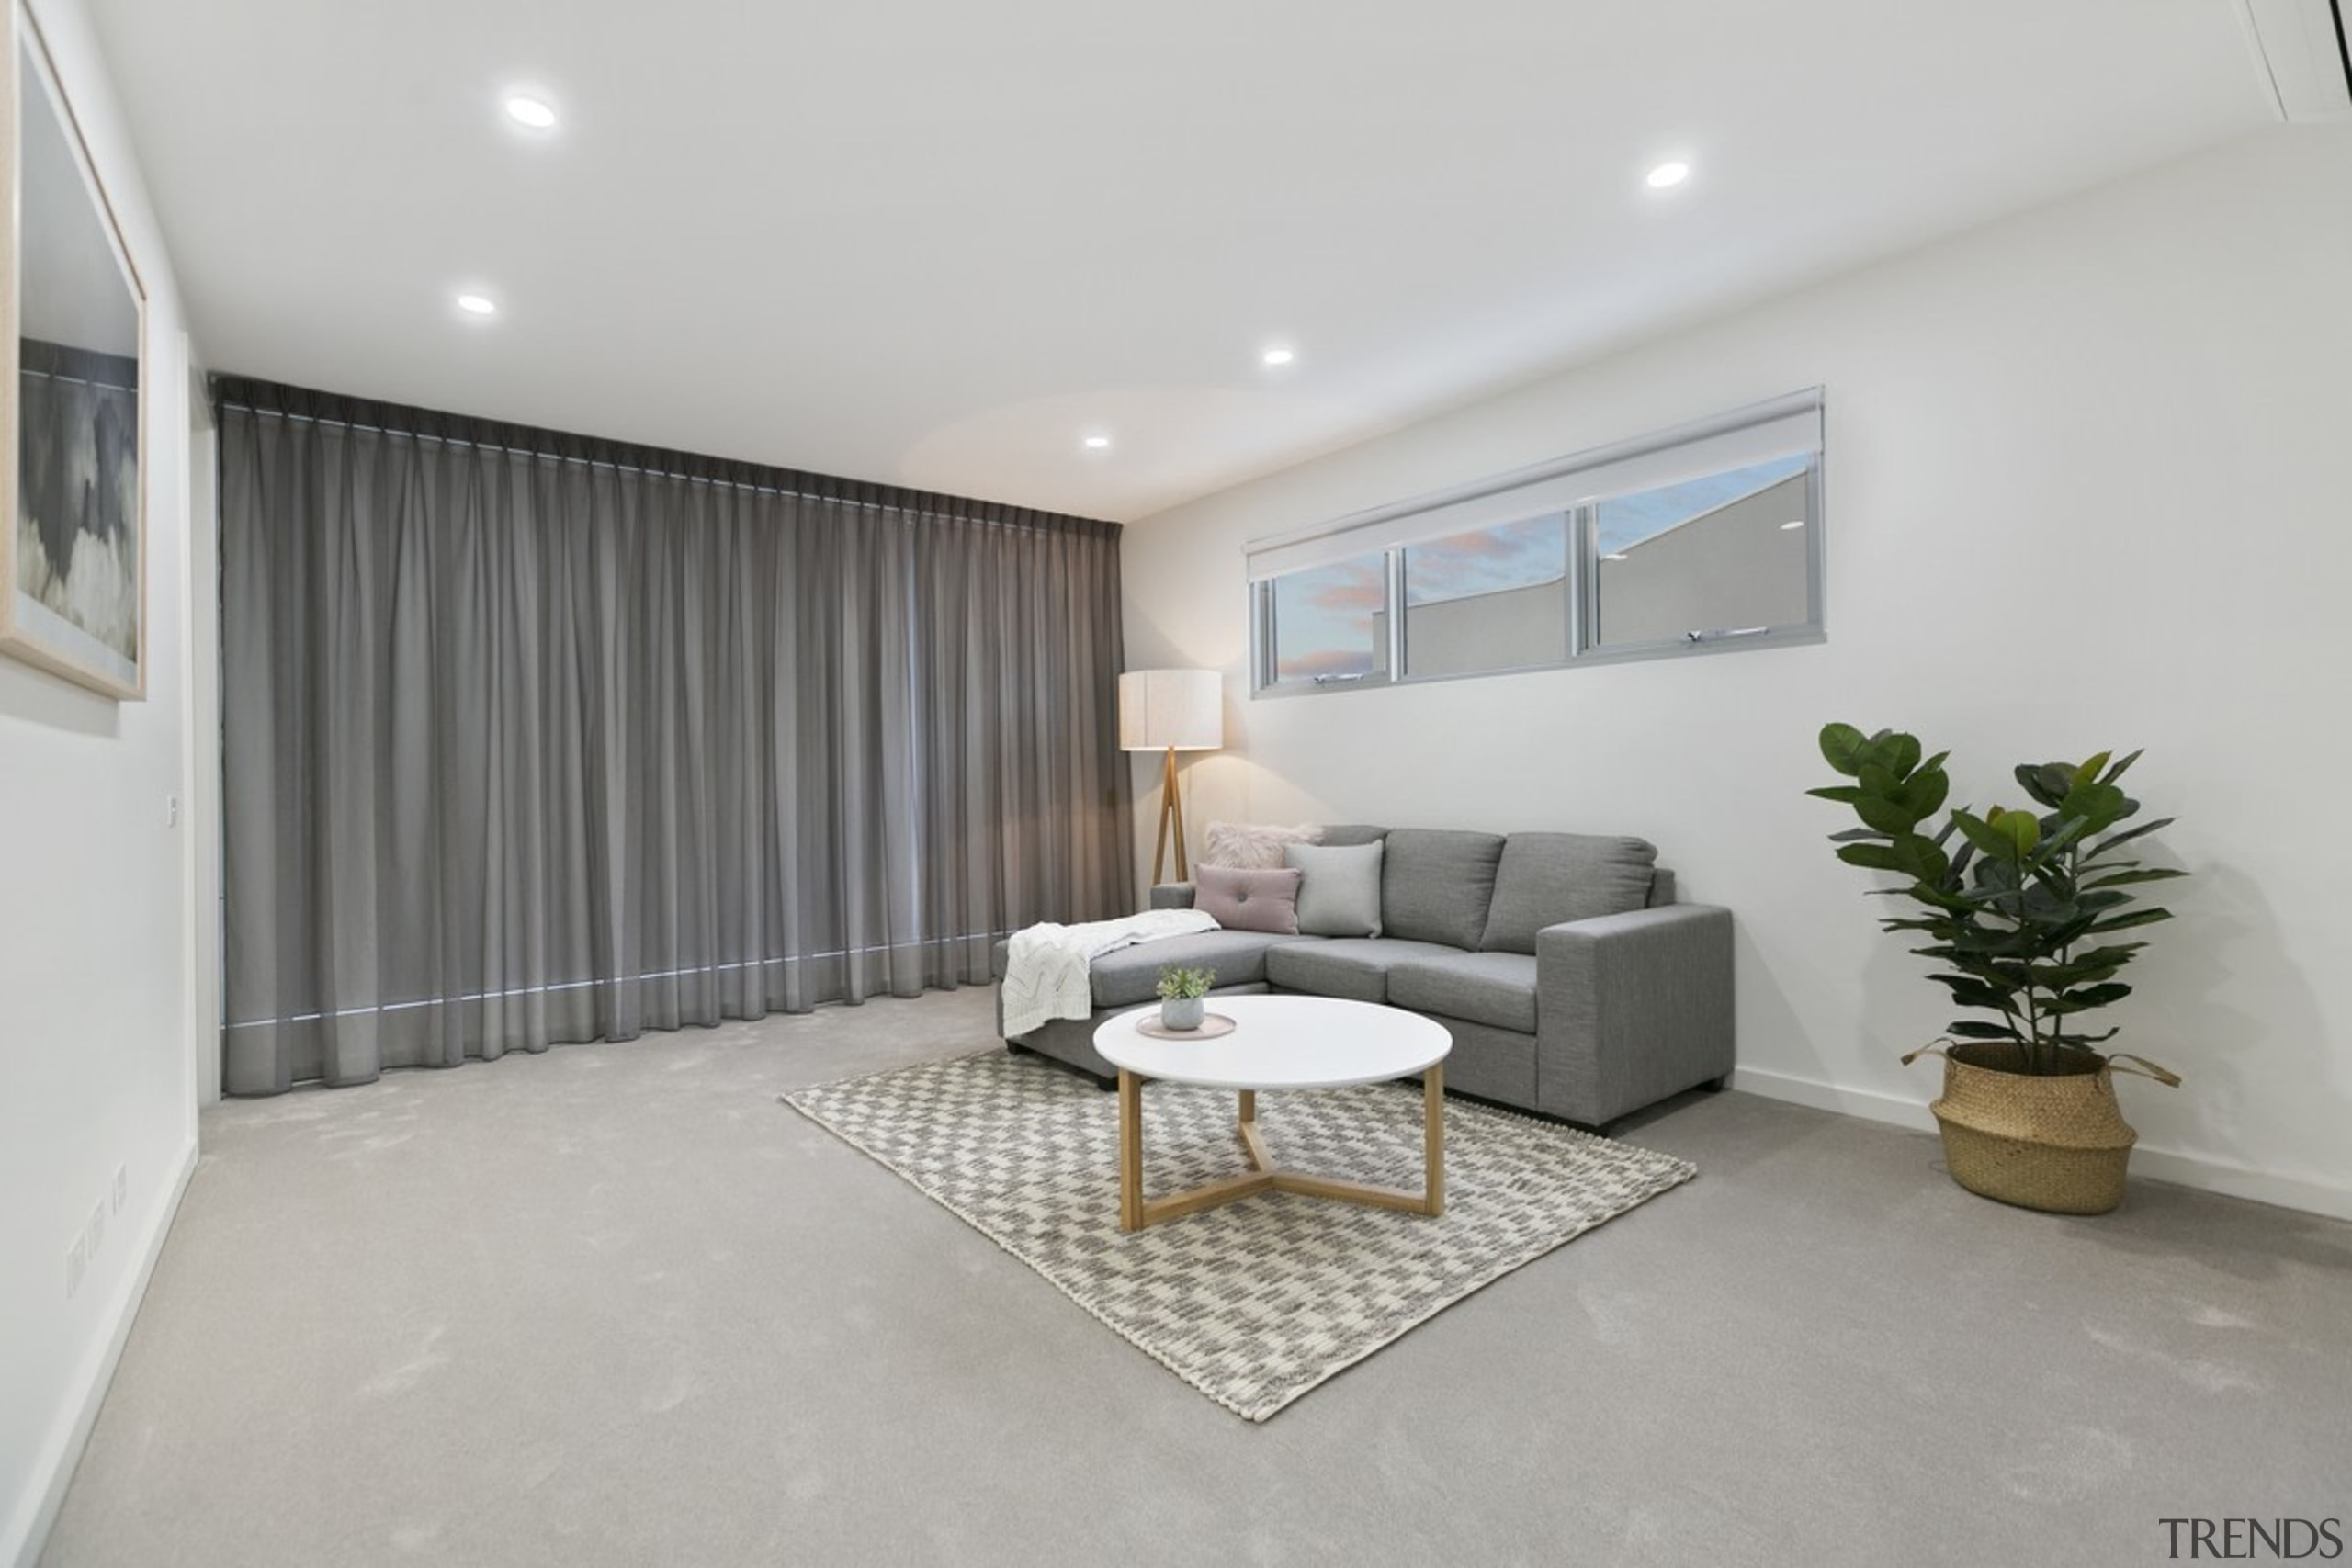 This second level living room is similarly open floor, interior design, property, real estate, gray